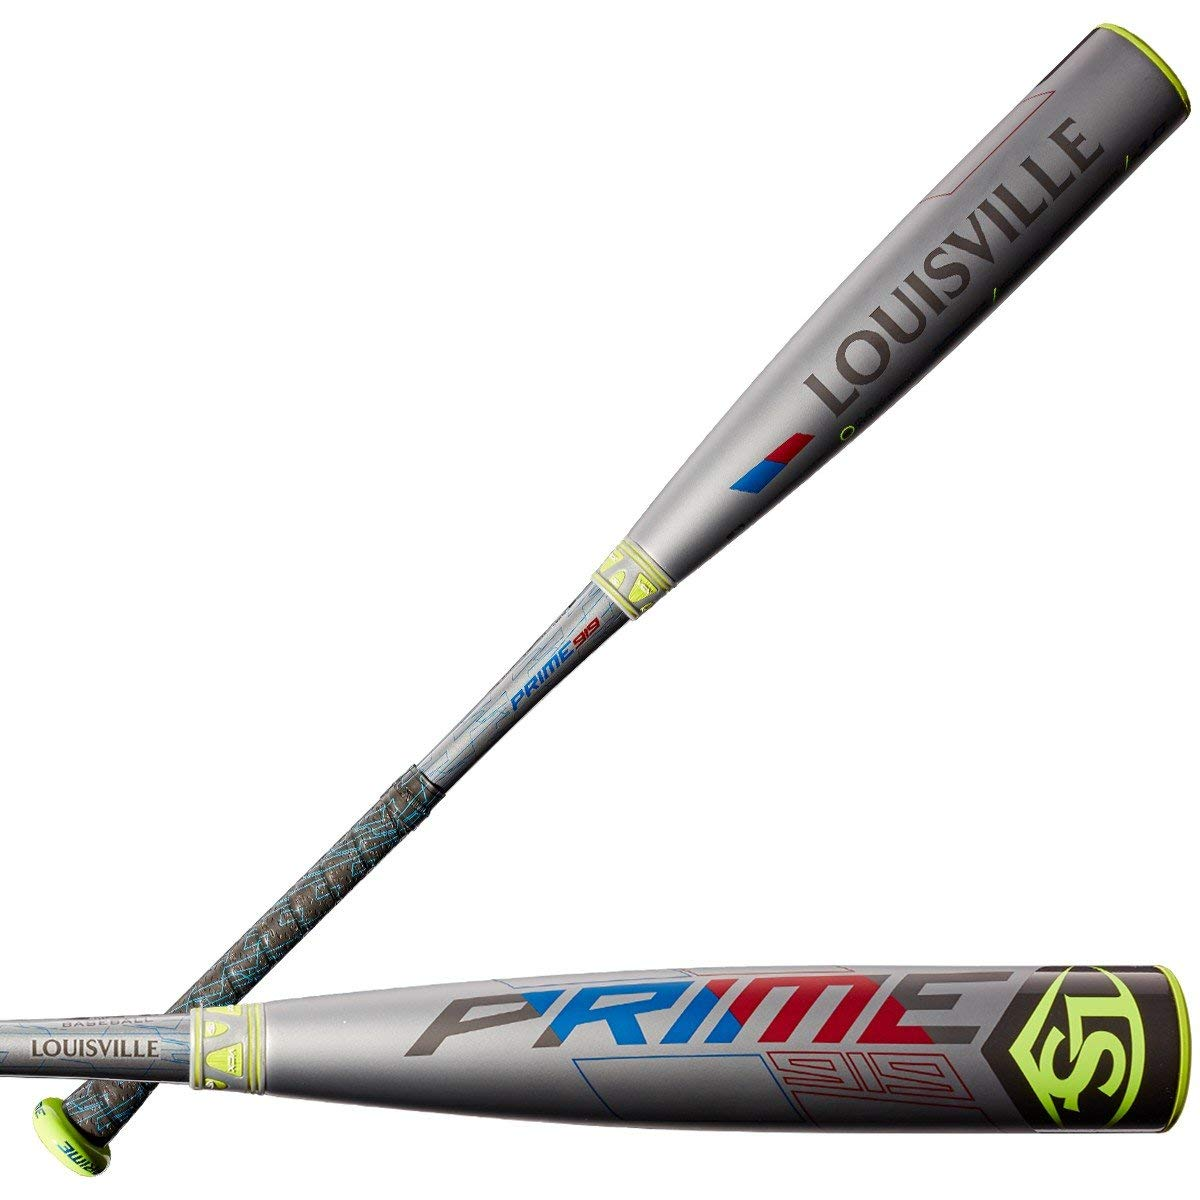 louisville-slugger-2019-prime-919-10-usa-baseball-bat-30-inch-20-oz WTLUBP919B1030 Louisville 887768730178 <p>-10 length to weight ratio 2 5/8 inch barrel diameter 2-piece